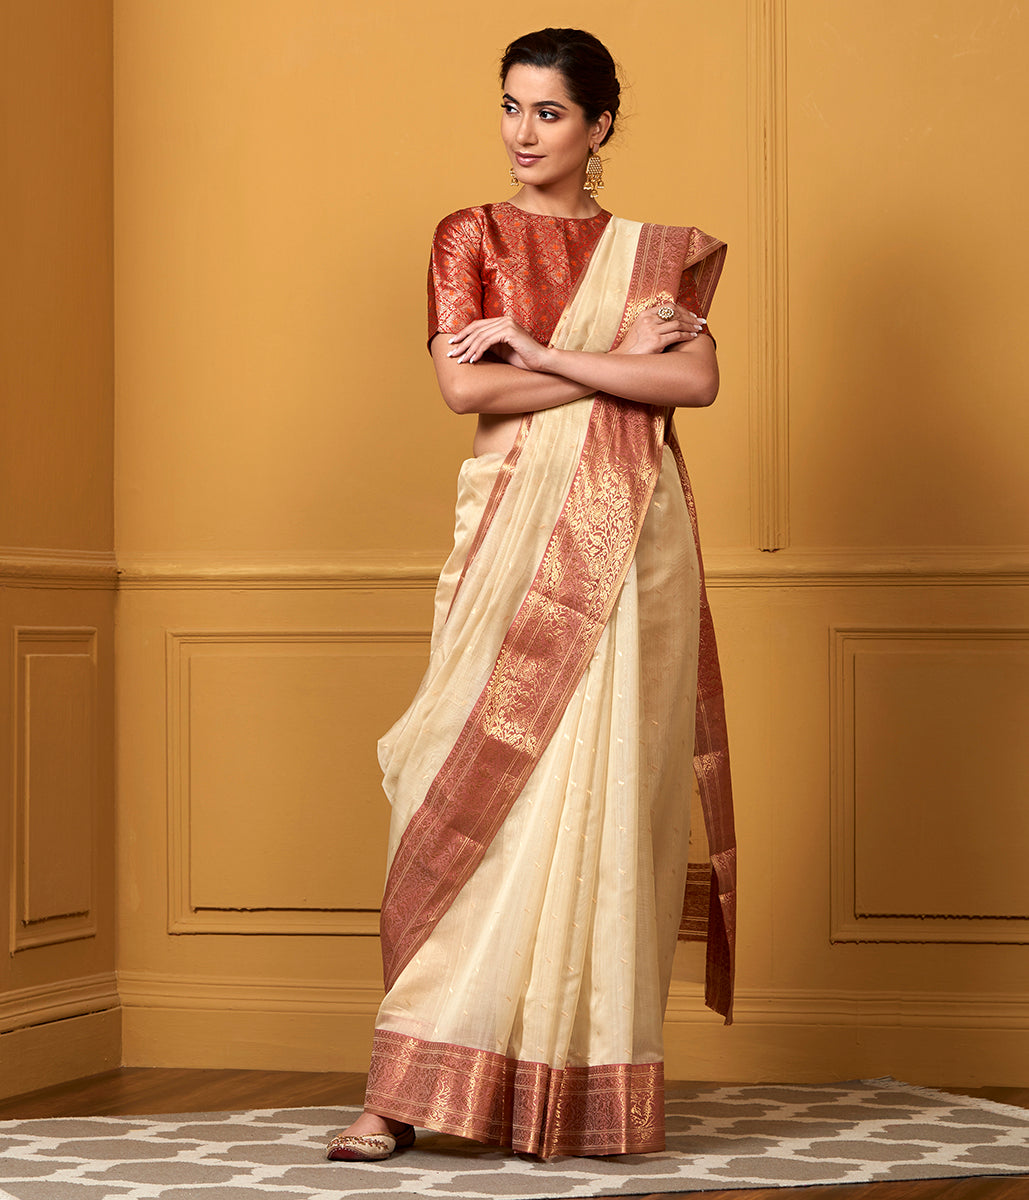 Handwoven Beige and Rose Pink Cotton Silk Saree with Nakshi Booti